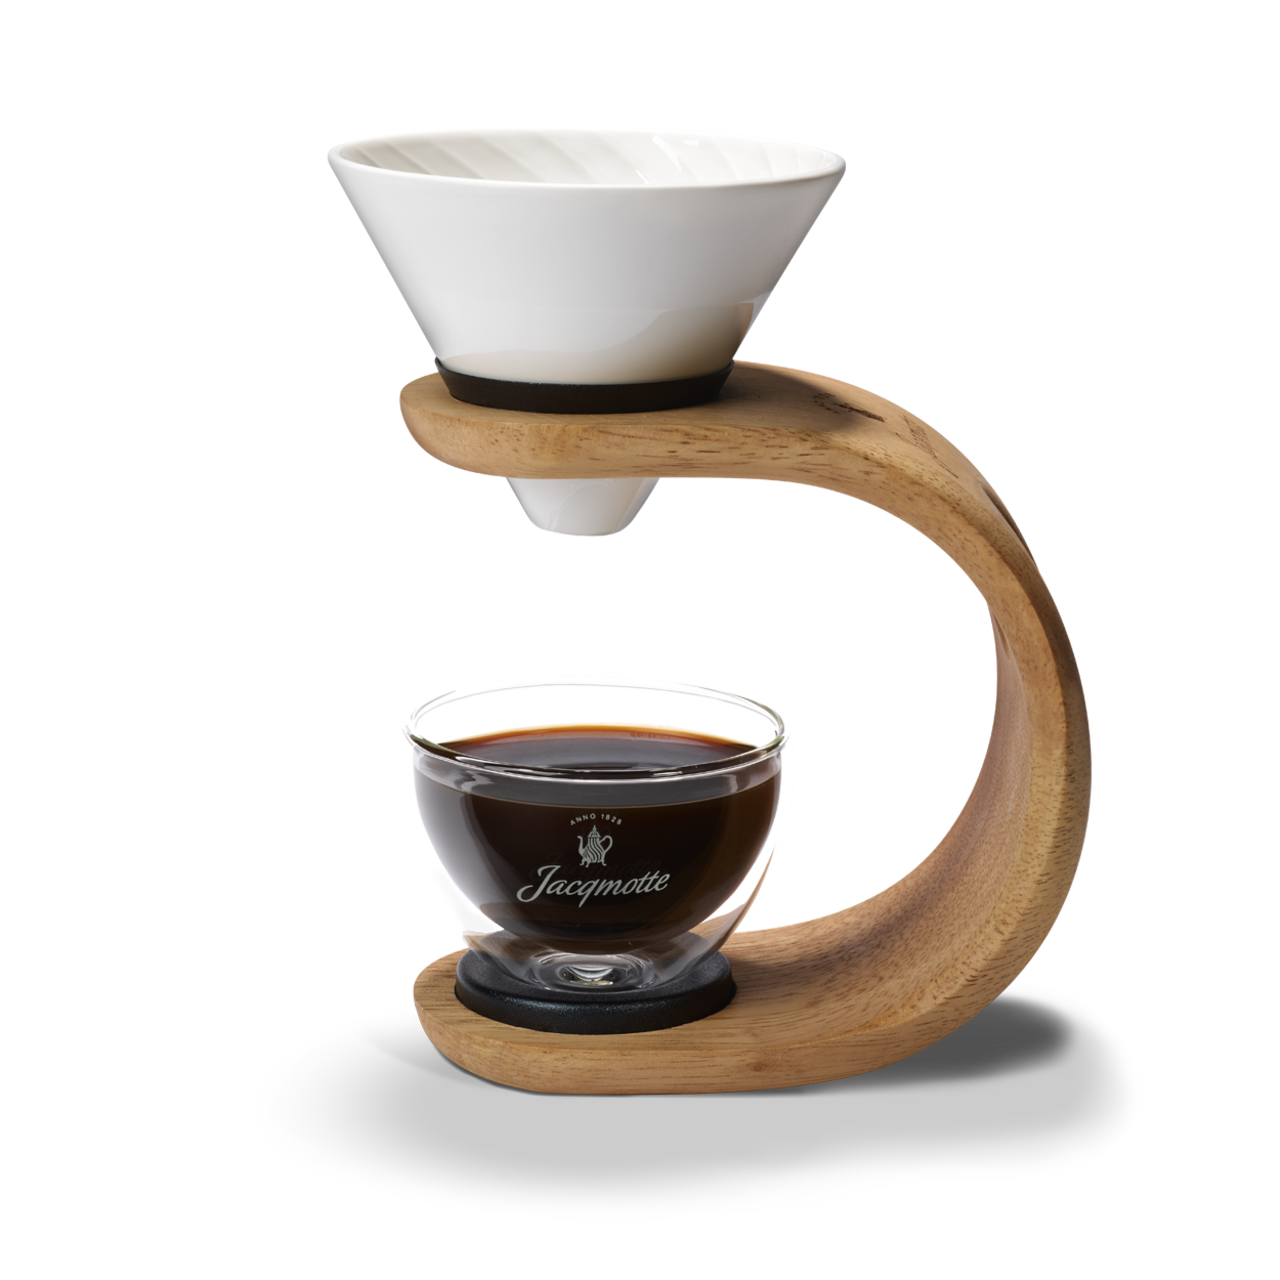 Coffee Maker How Stuff Works : Jacqmotte Slow Drip Coffee Maker Work Pinkeye designstudio #pinkeyedesign